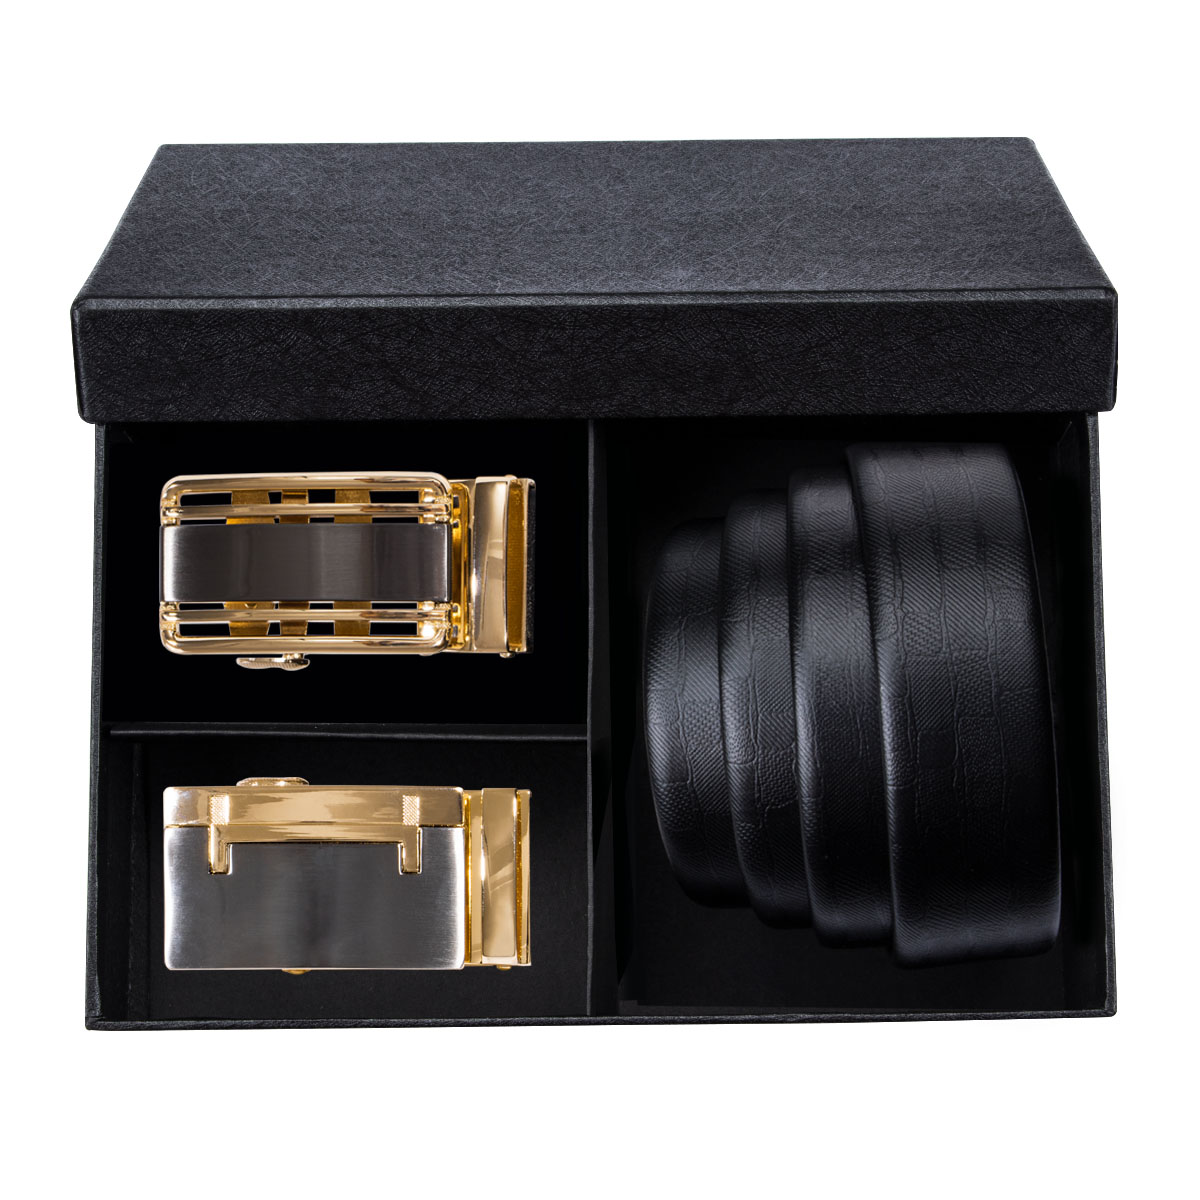 PB-01 Barry.Wang 2018 Best Recommends Mens Belts Sets Within Black Gift Box Genuine Leather Luxury Strap Male Belts For Men